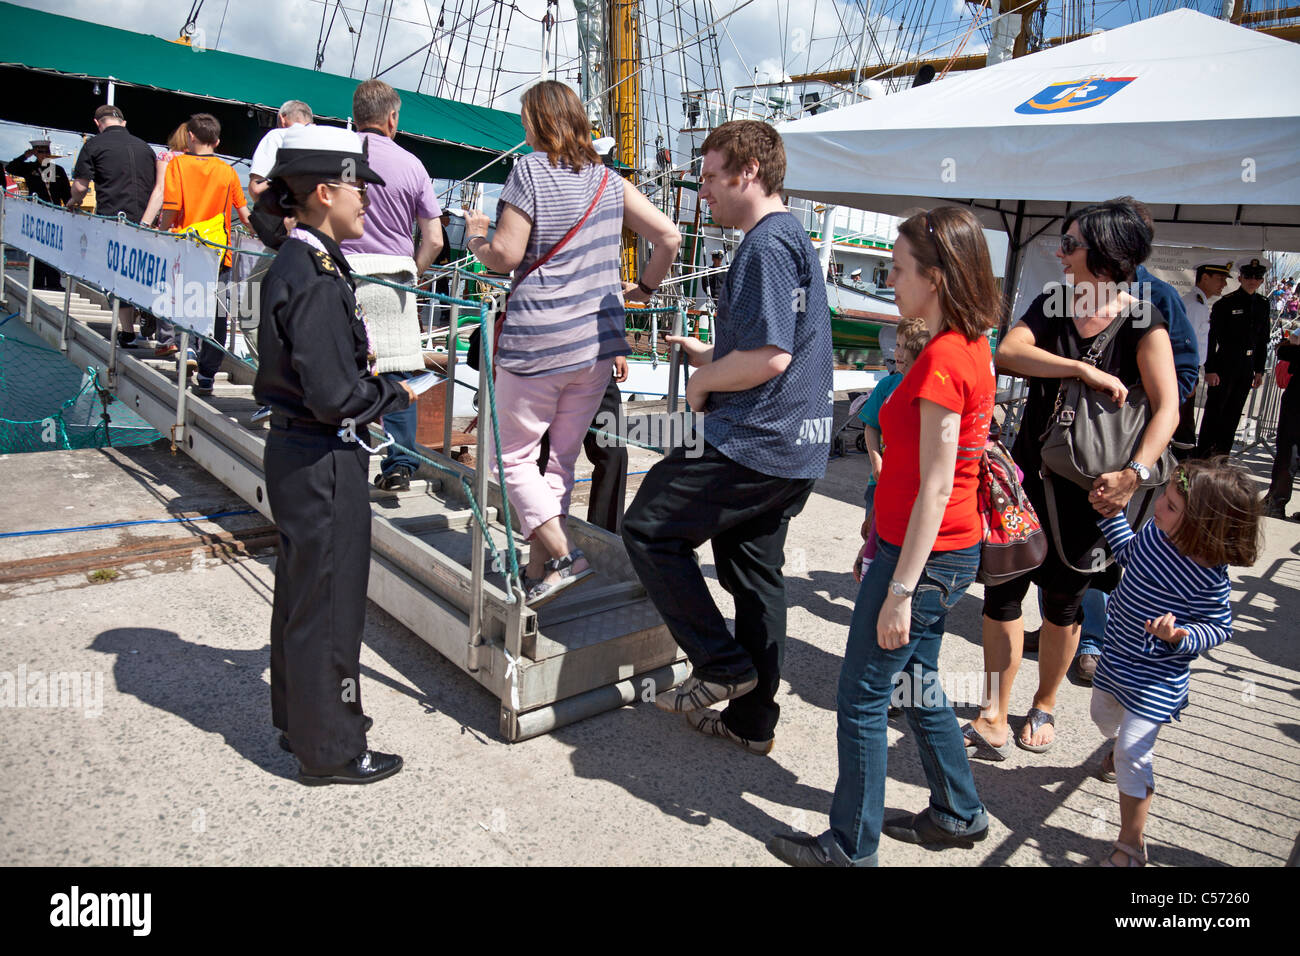 Crew of the Colombian Tall Ship ARC Gloria welcome the public on board at Greenock, Scotland. Tall Ships Race 2011. - Stock Image